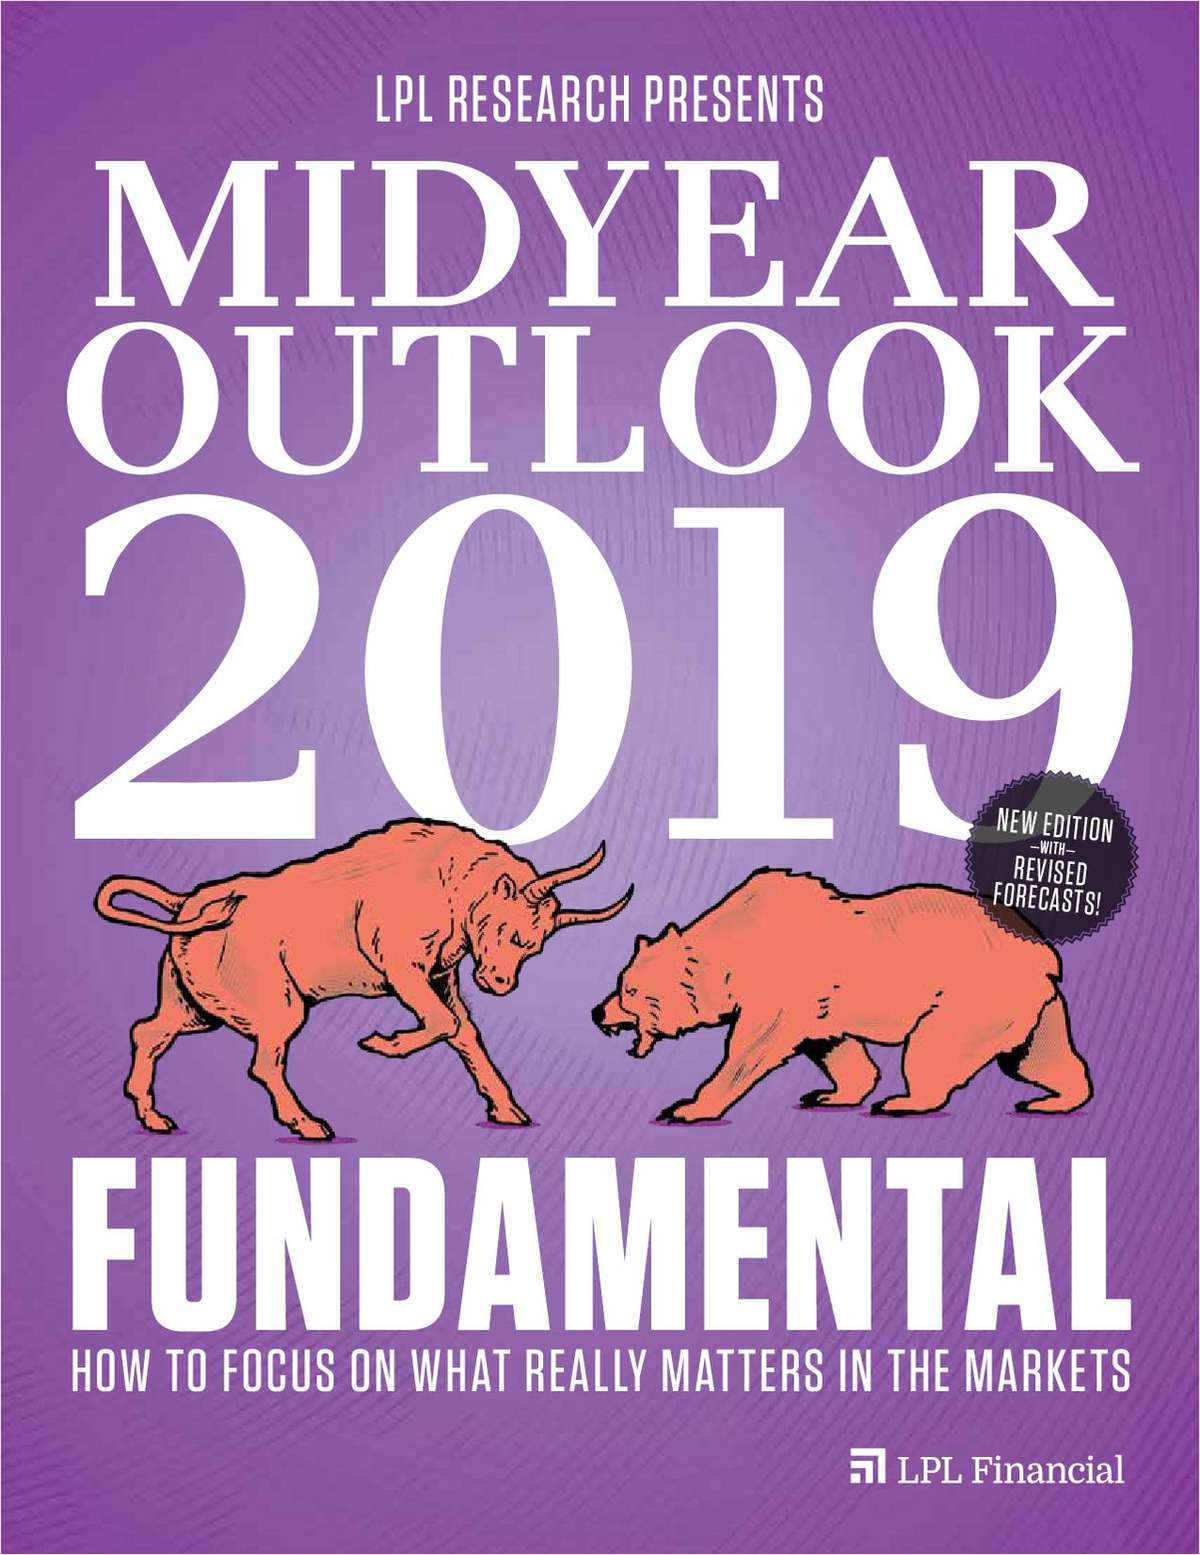 Midyear Outlook 2019: Focus on What Really Matters in the Markets